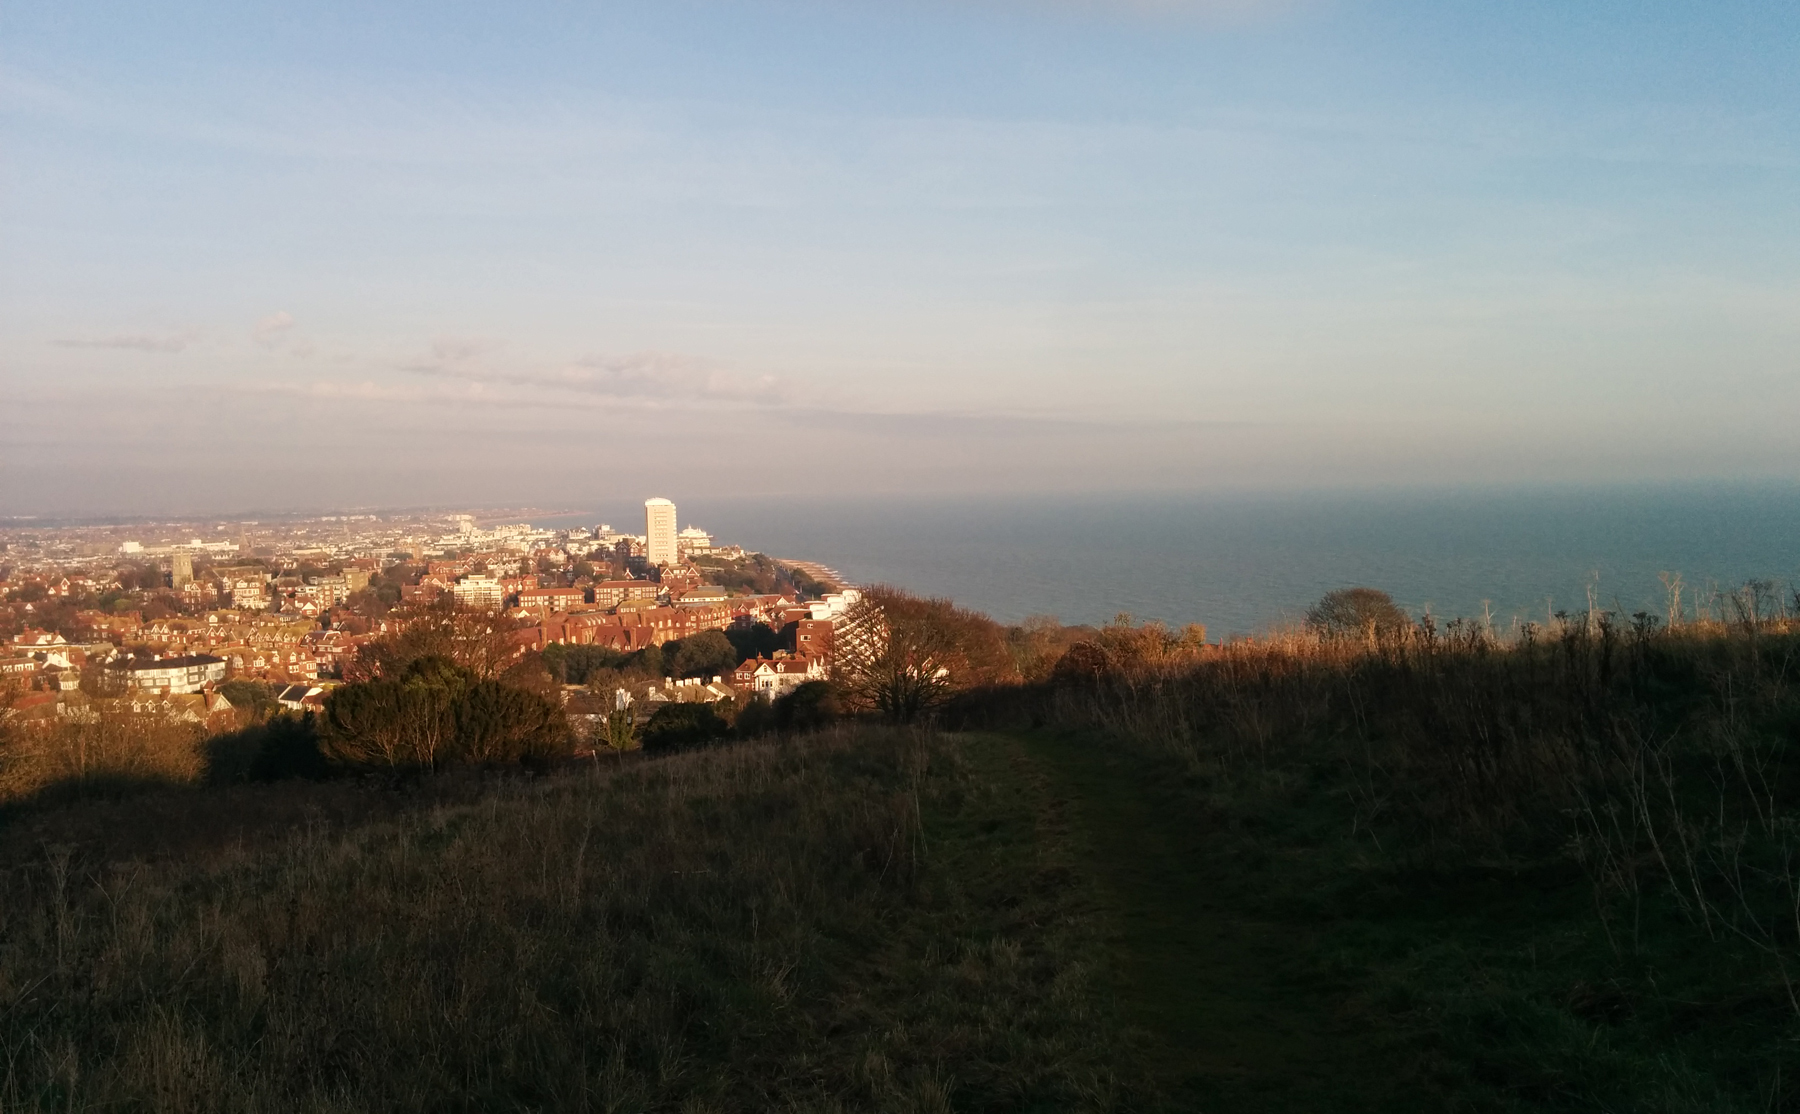 Looking back to Eastbourne from the footpath